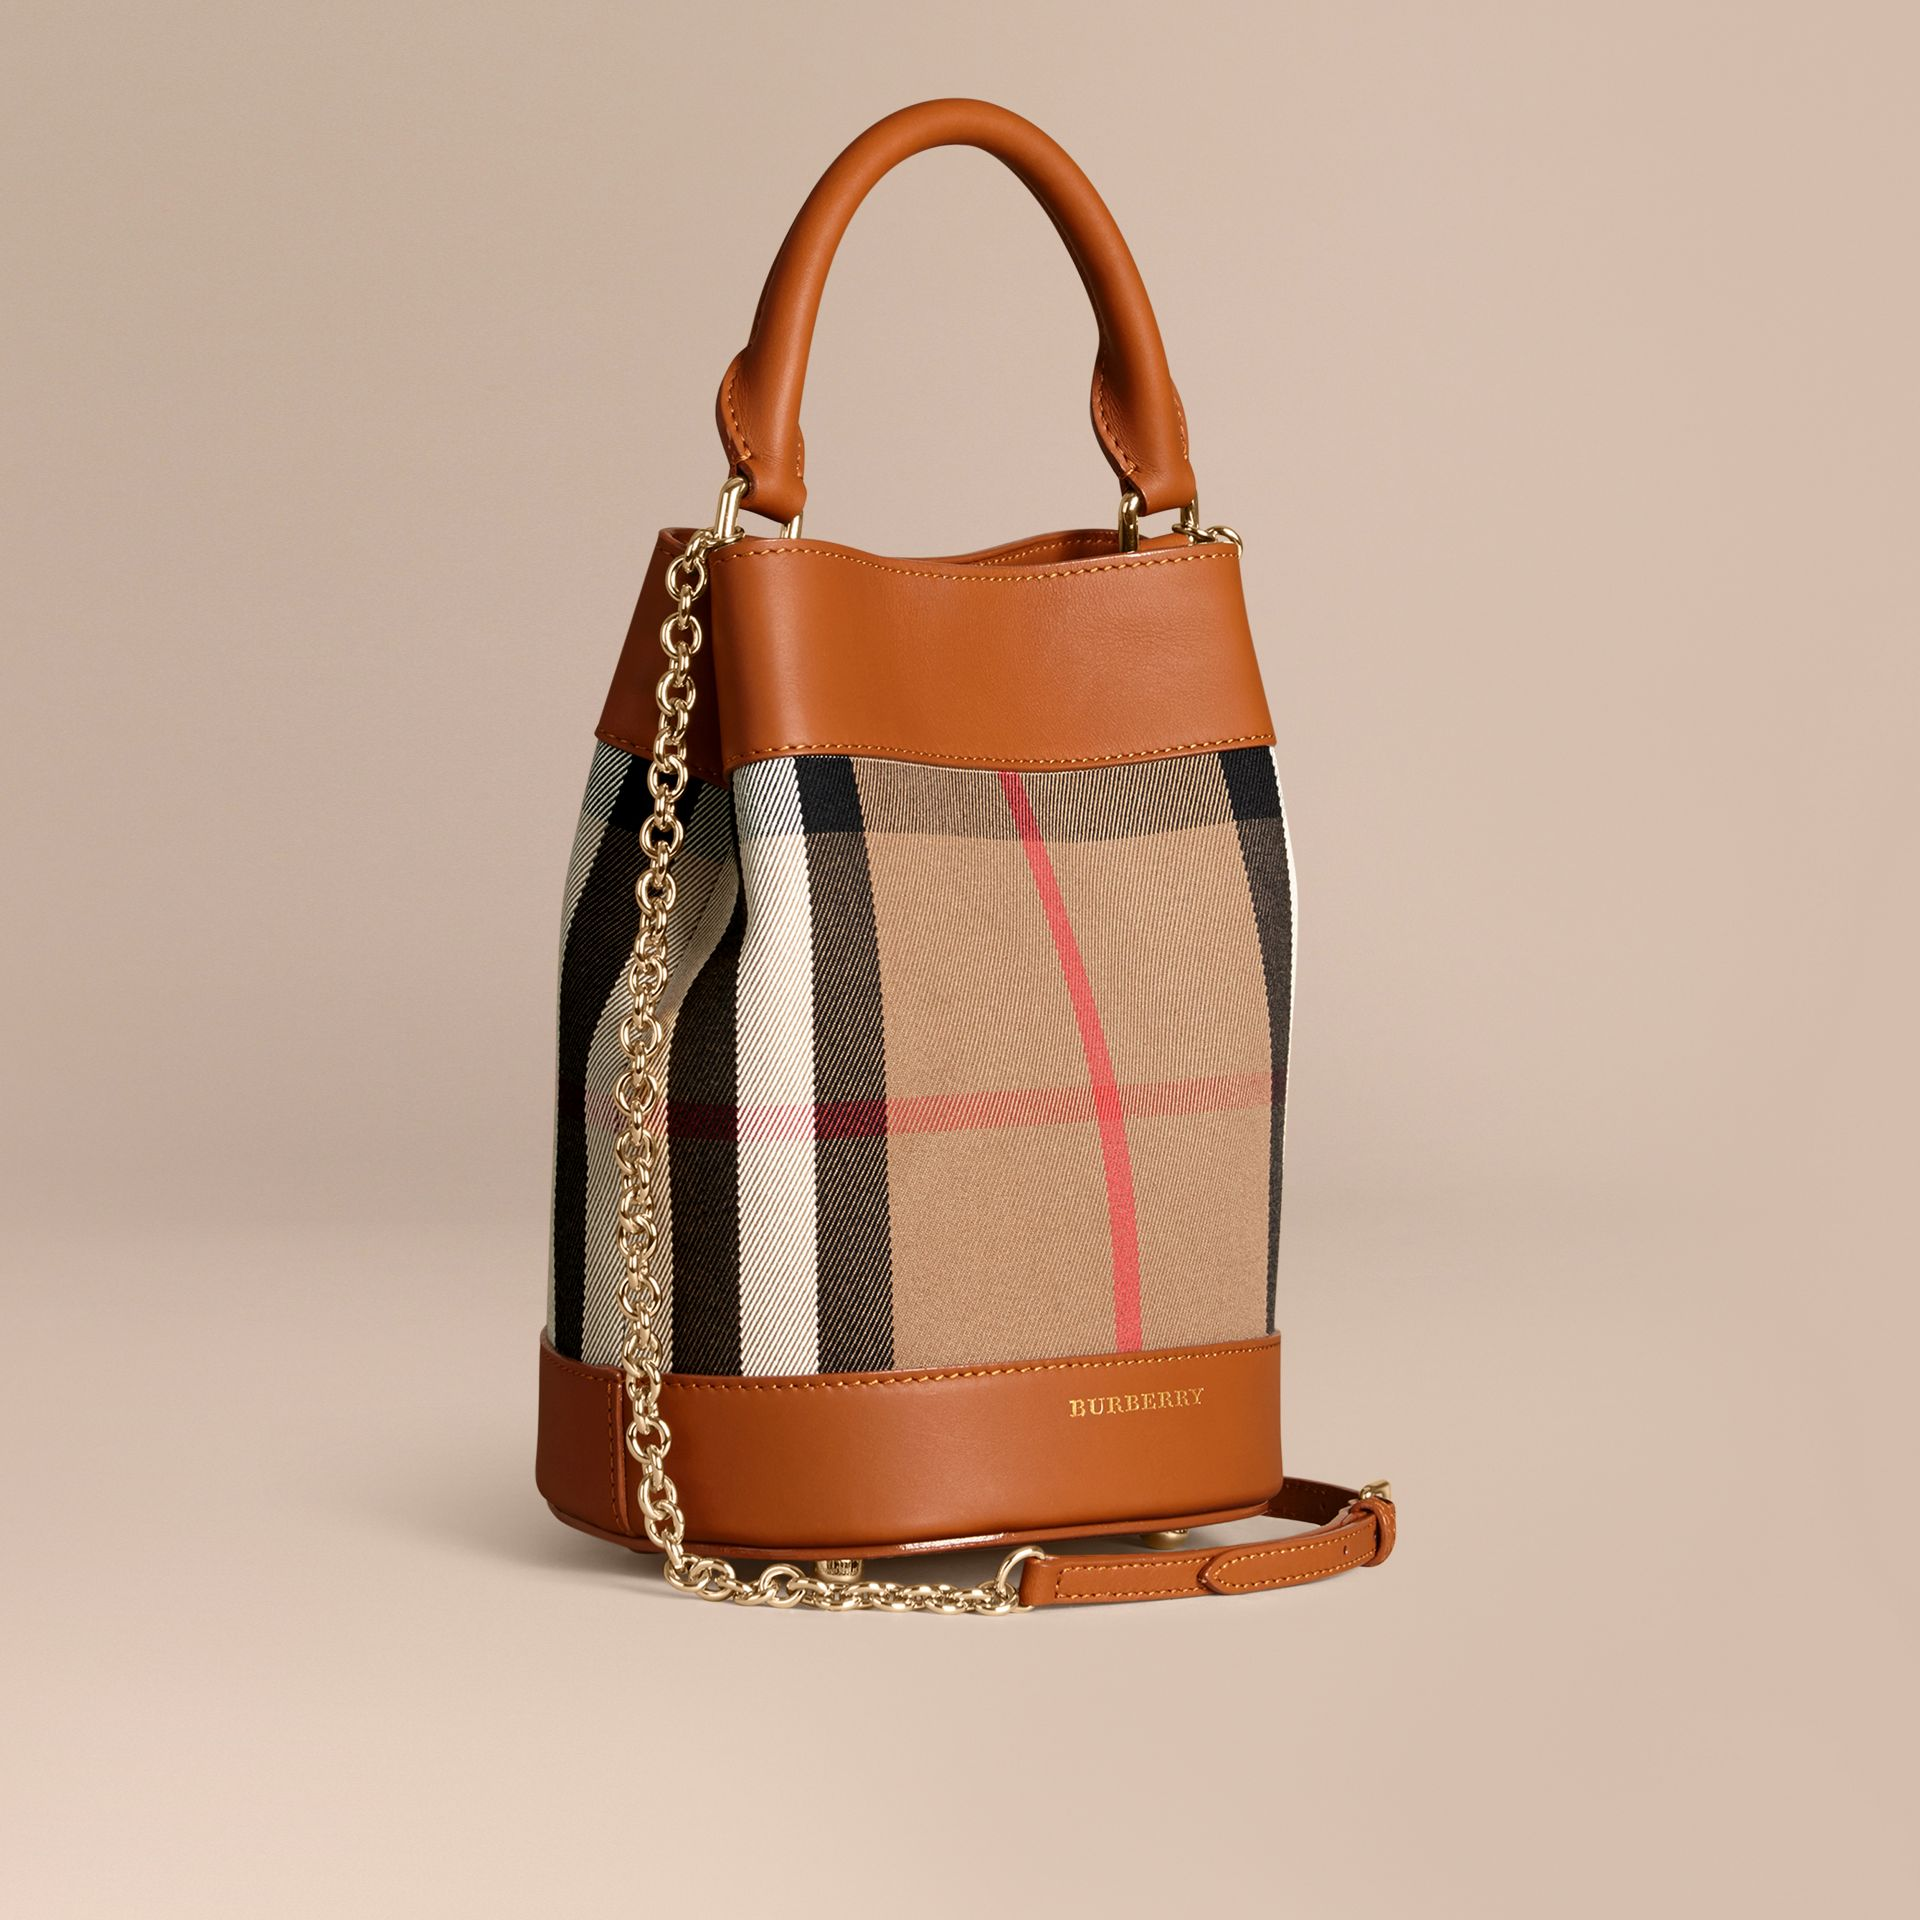 Toffee clair Petit sac Burberry Bucket en coton House check et cuir Toffee Clair - photo de la galerie 1